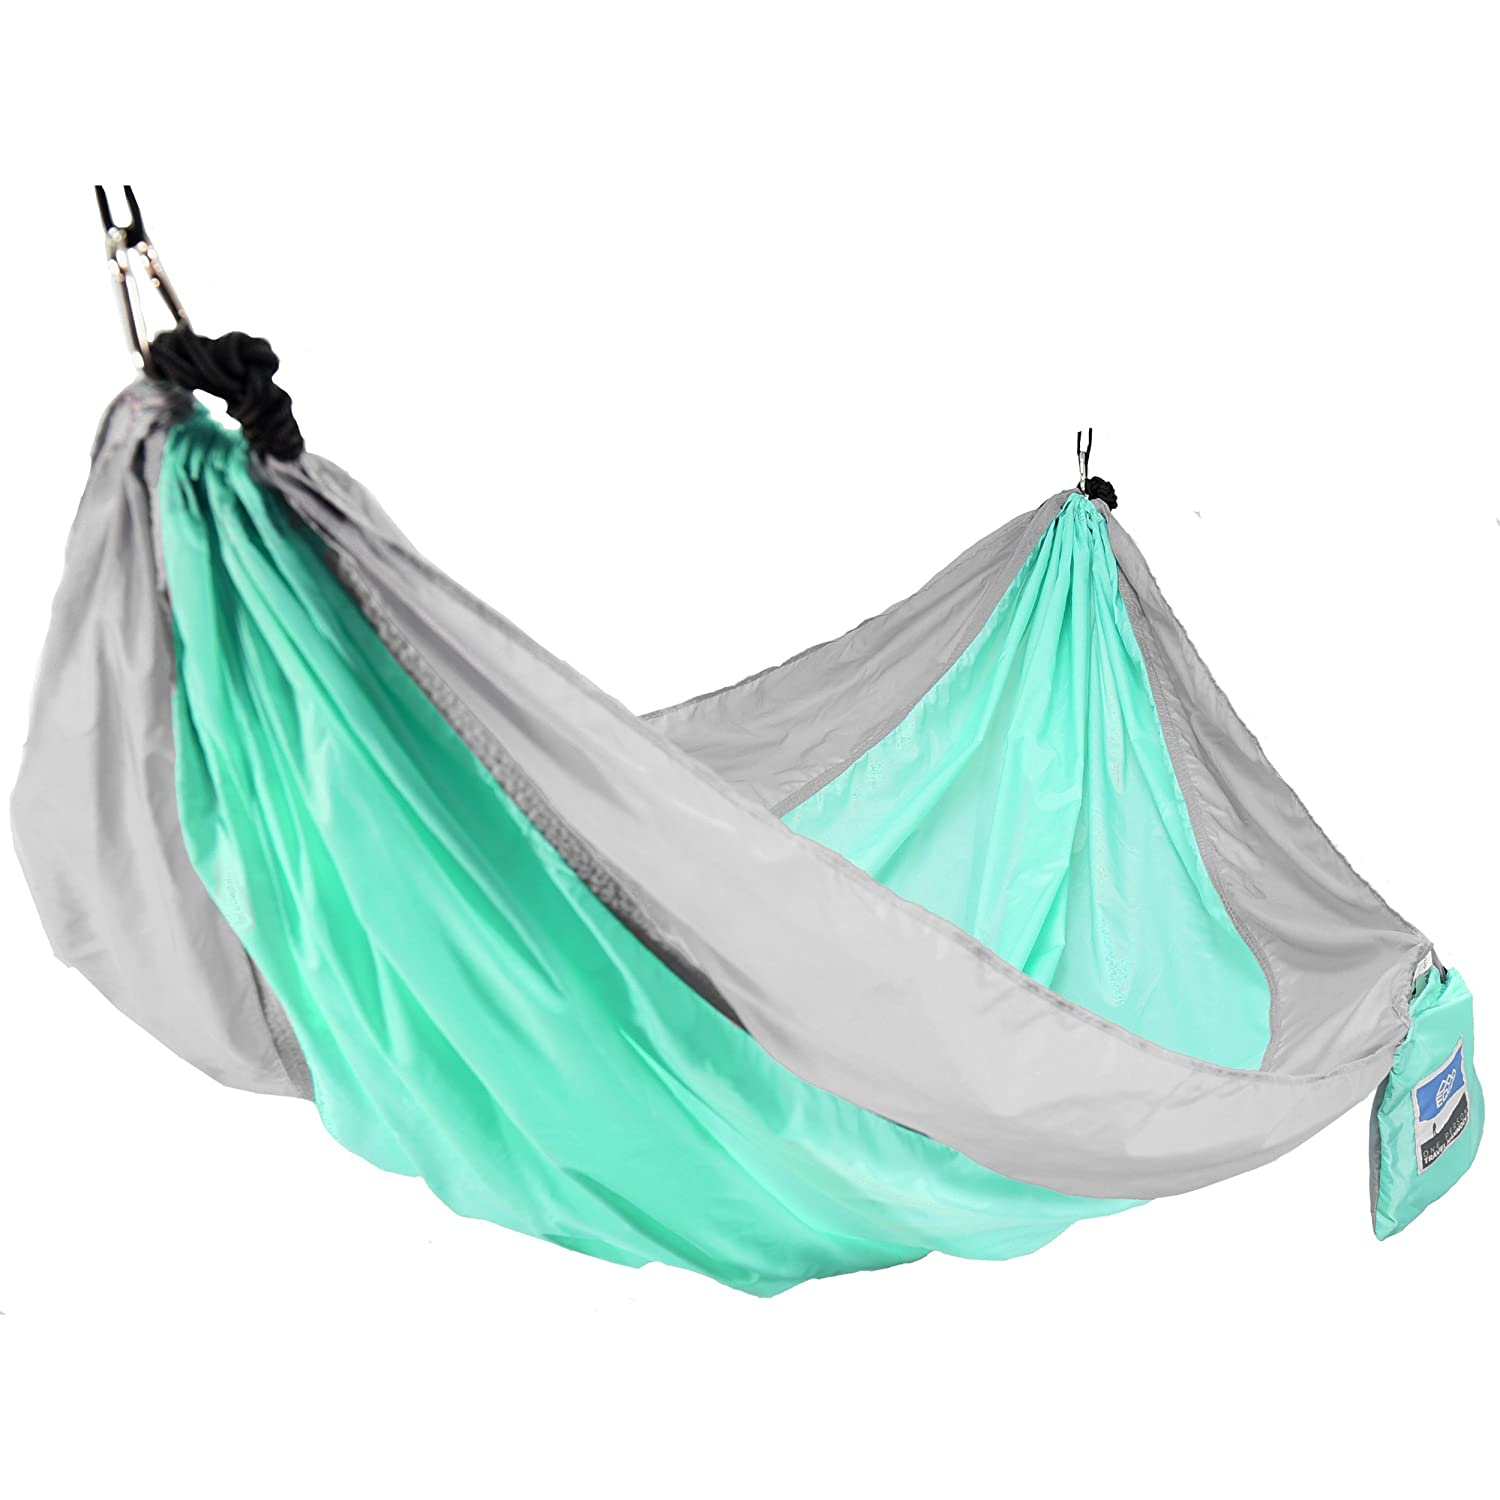 hammocks woods castaway go travel raspberry to hammock turquoise camping double nylon xx pa